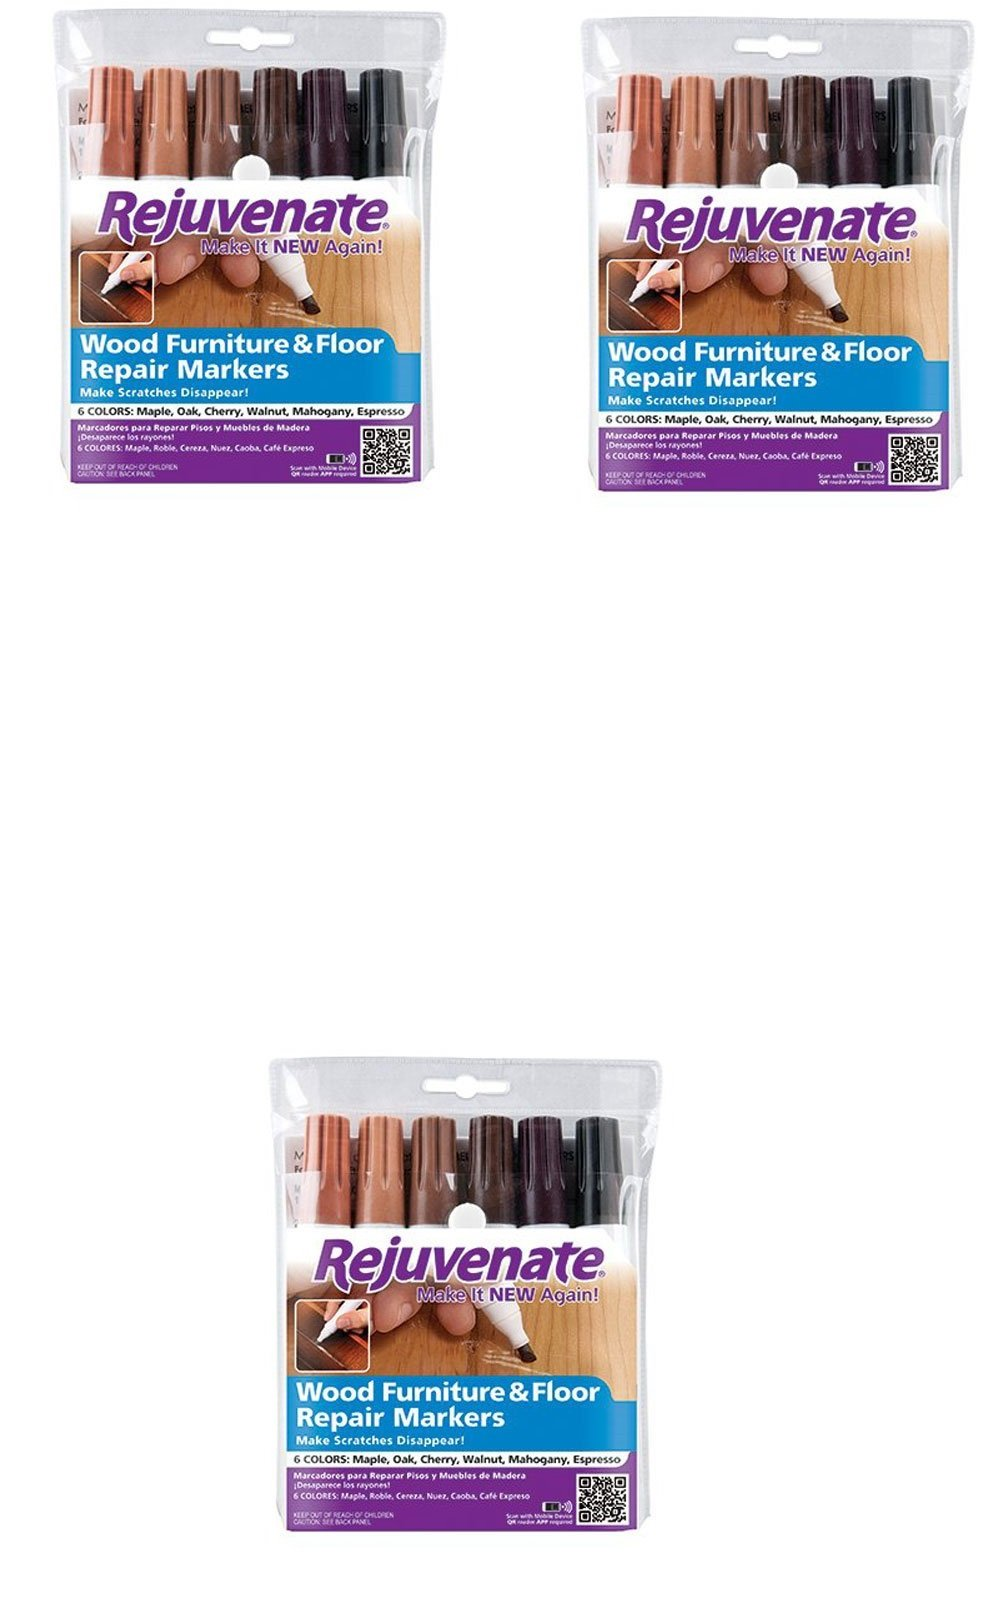 Rejuvenate Wood Furniture & Floor Repair Markers Make Scratches Disappear in Any Color Wood - 6 Colors; Maple, Oak, Cherry, Walnut, Mahogany, Espresso (3 pack) by Rejuvenate